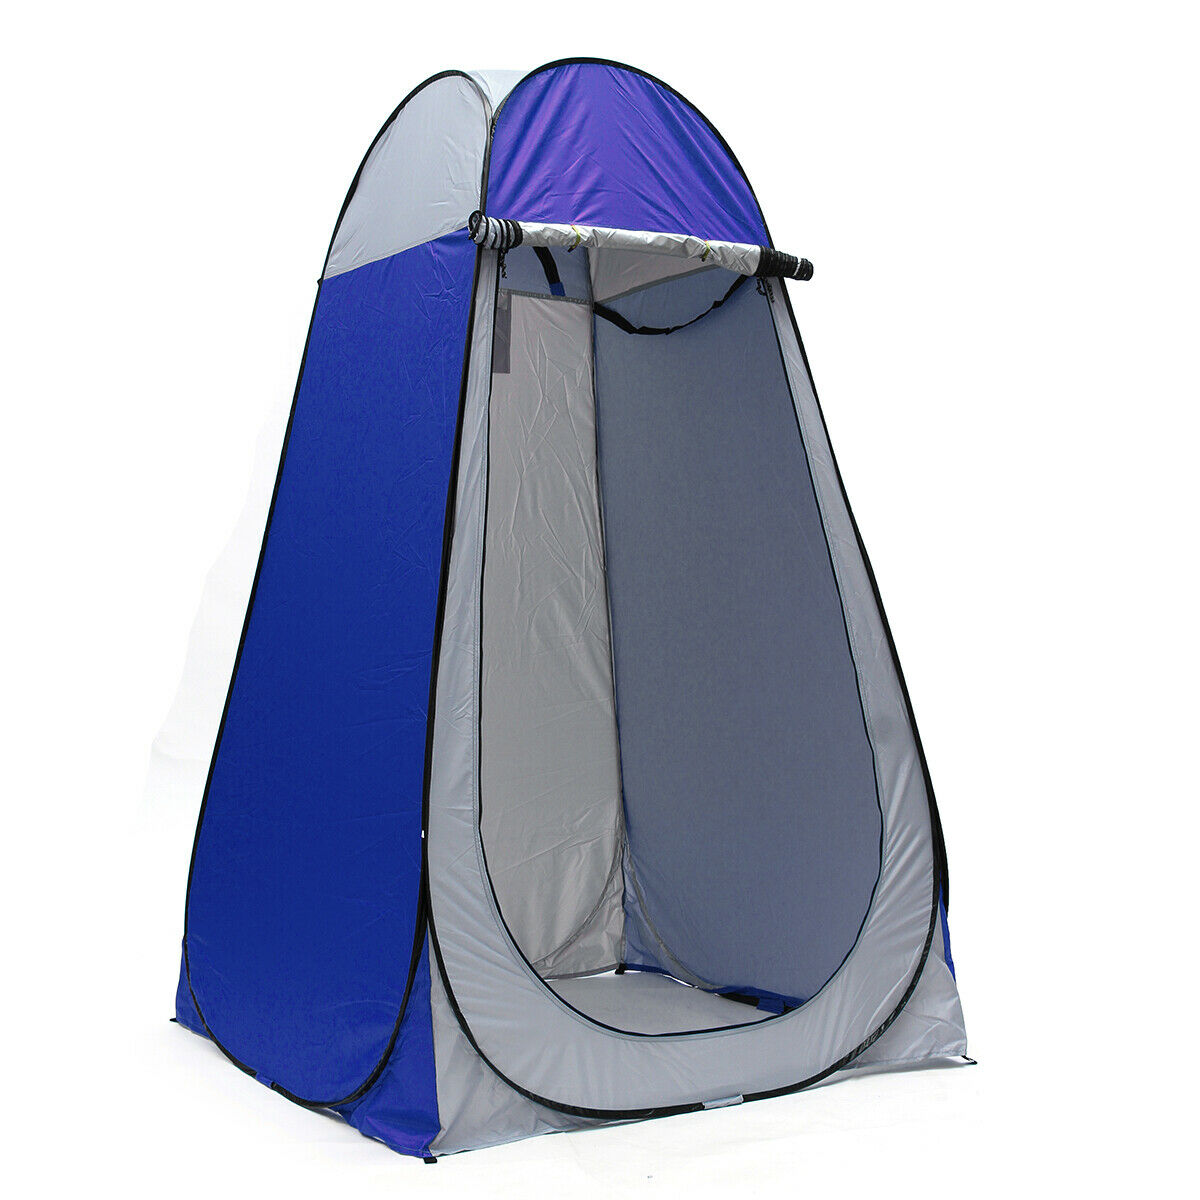 1.2x1.2x1.9m Portable Pop-up Tent Camping Travel Toilet Shower Room Outdoor